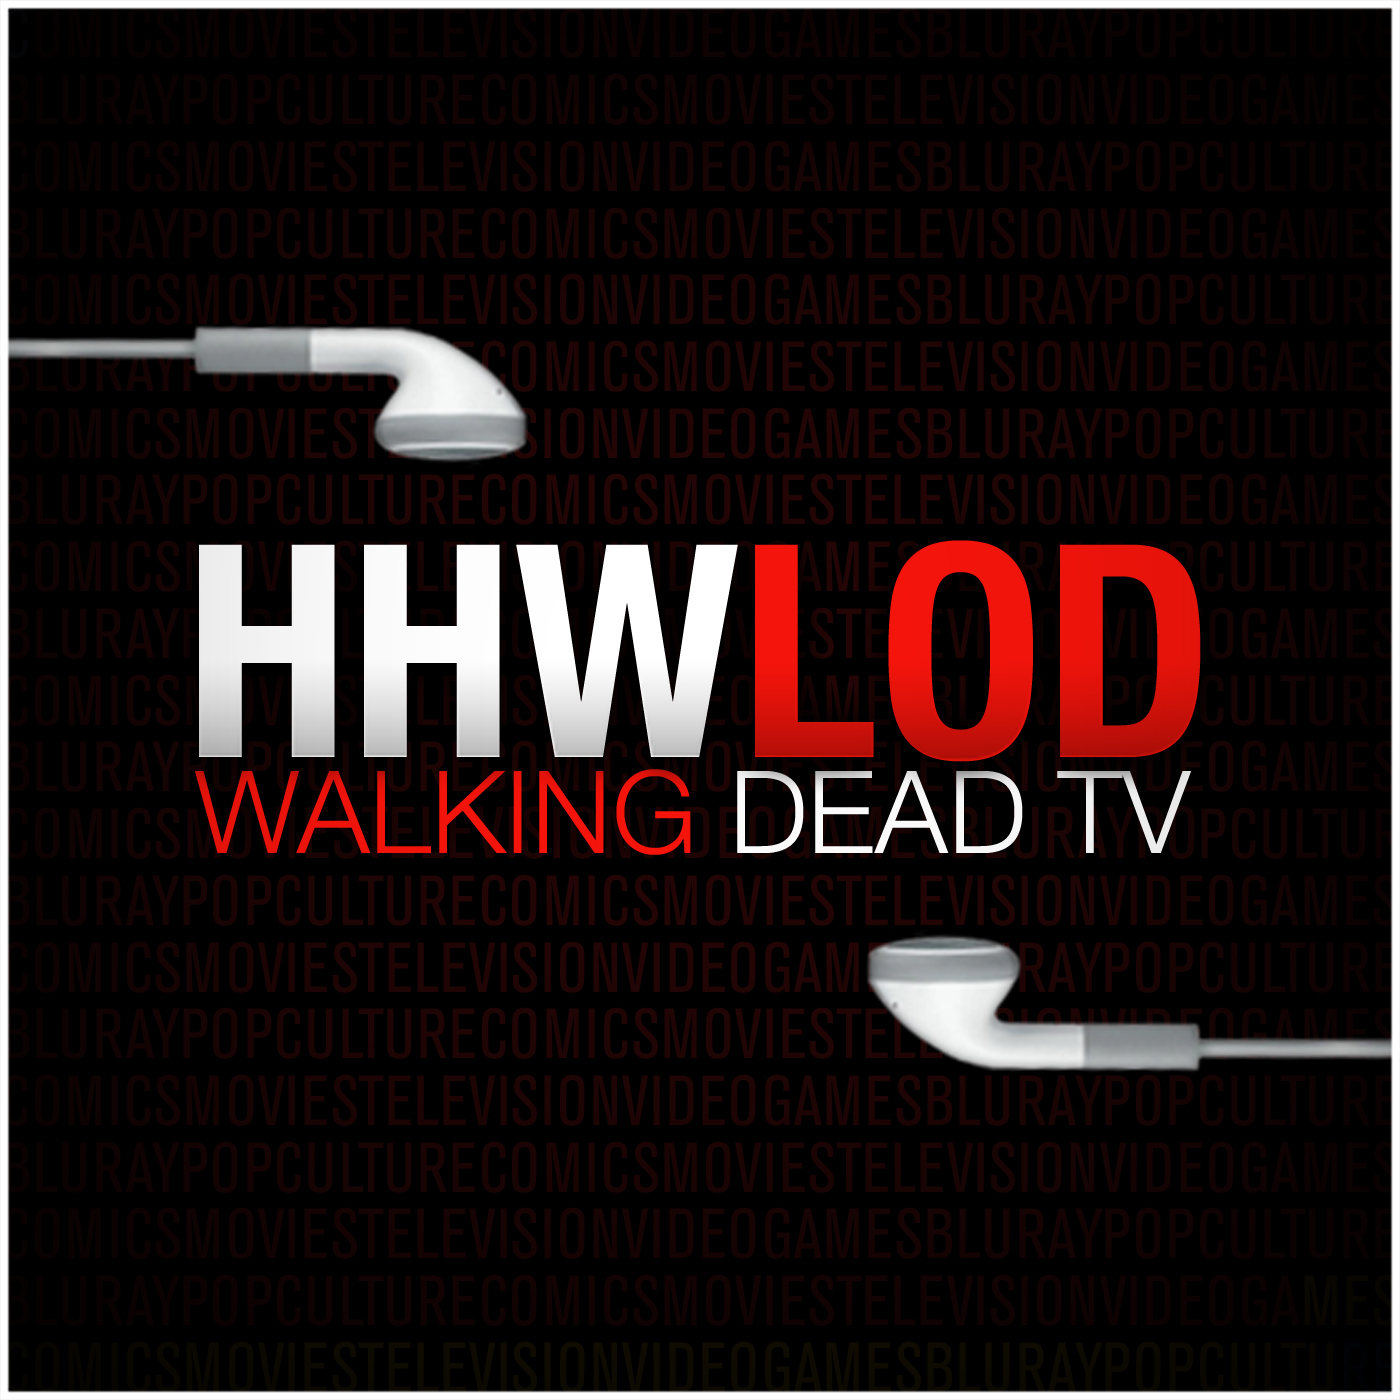 The Walking Dead TV Podcast